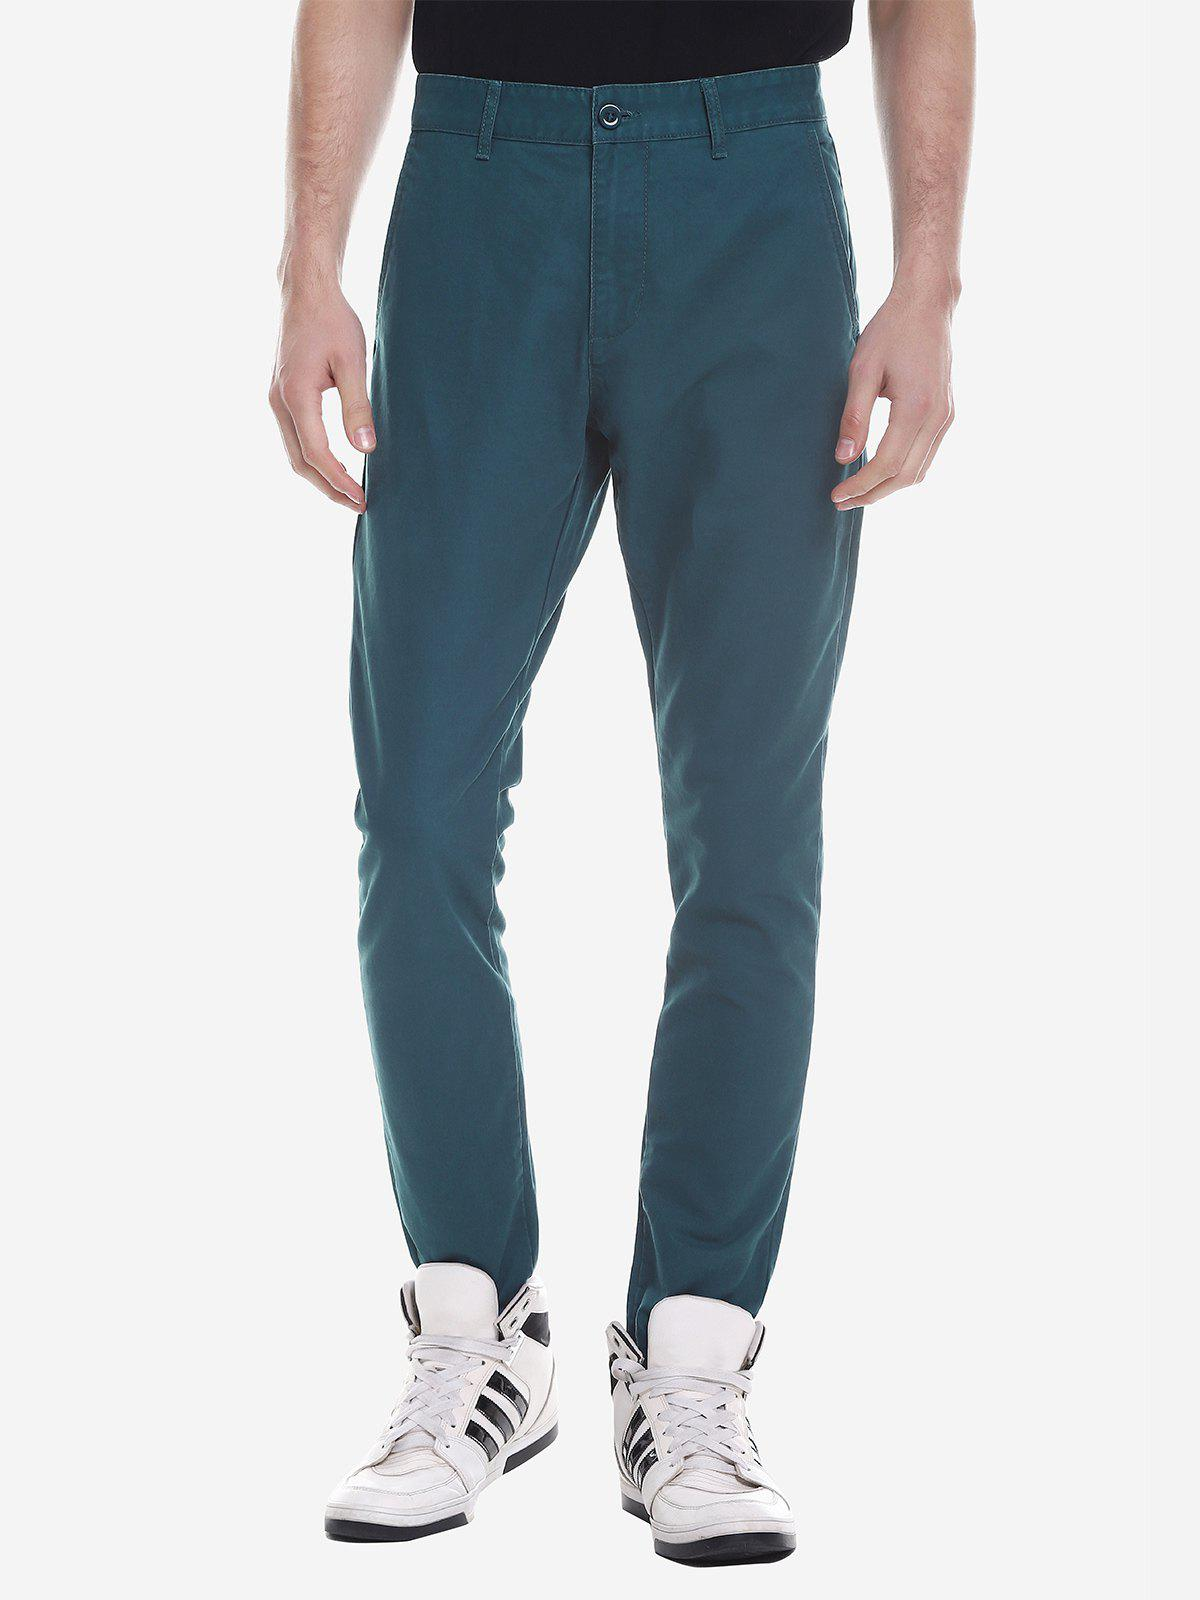 Trendy ZANSTYLE Men Slim Pants